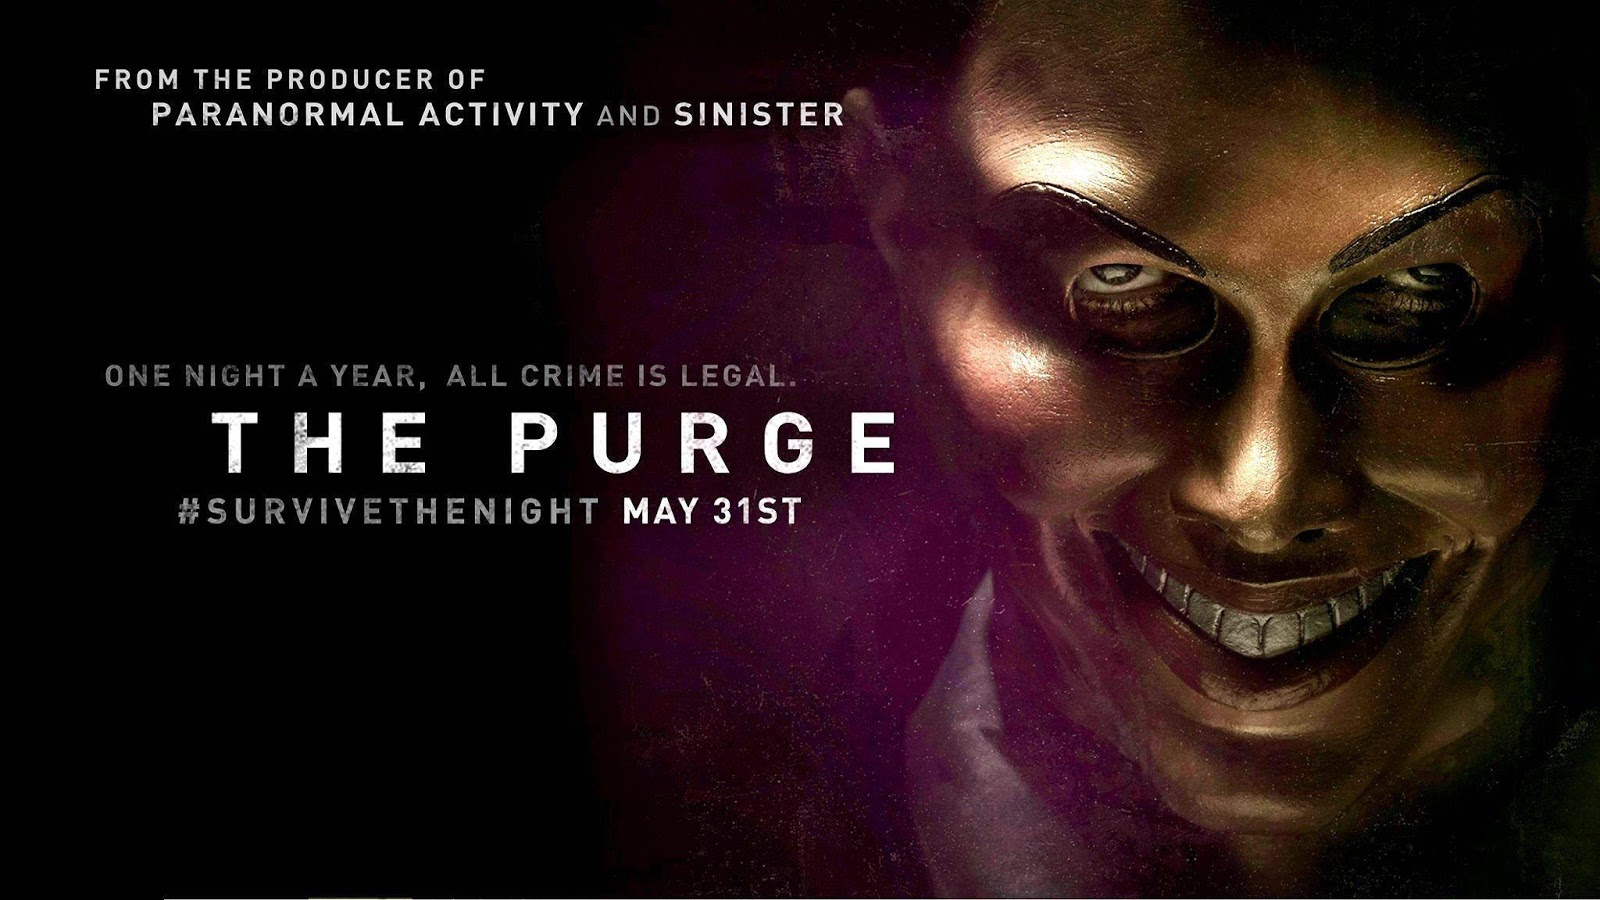 THE PURGE (2013) MOVIE TAMIL DUBBED HD